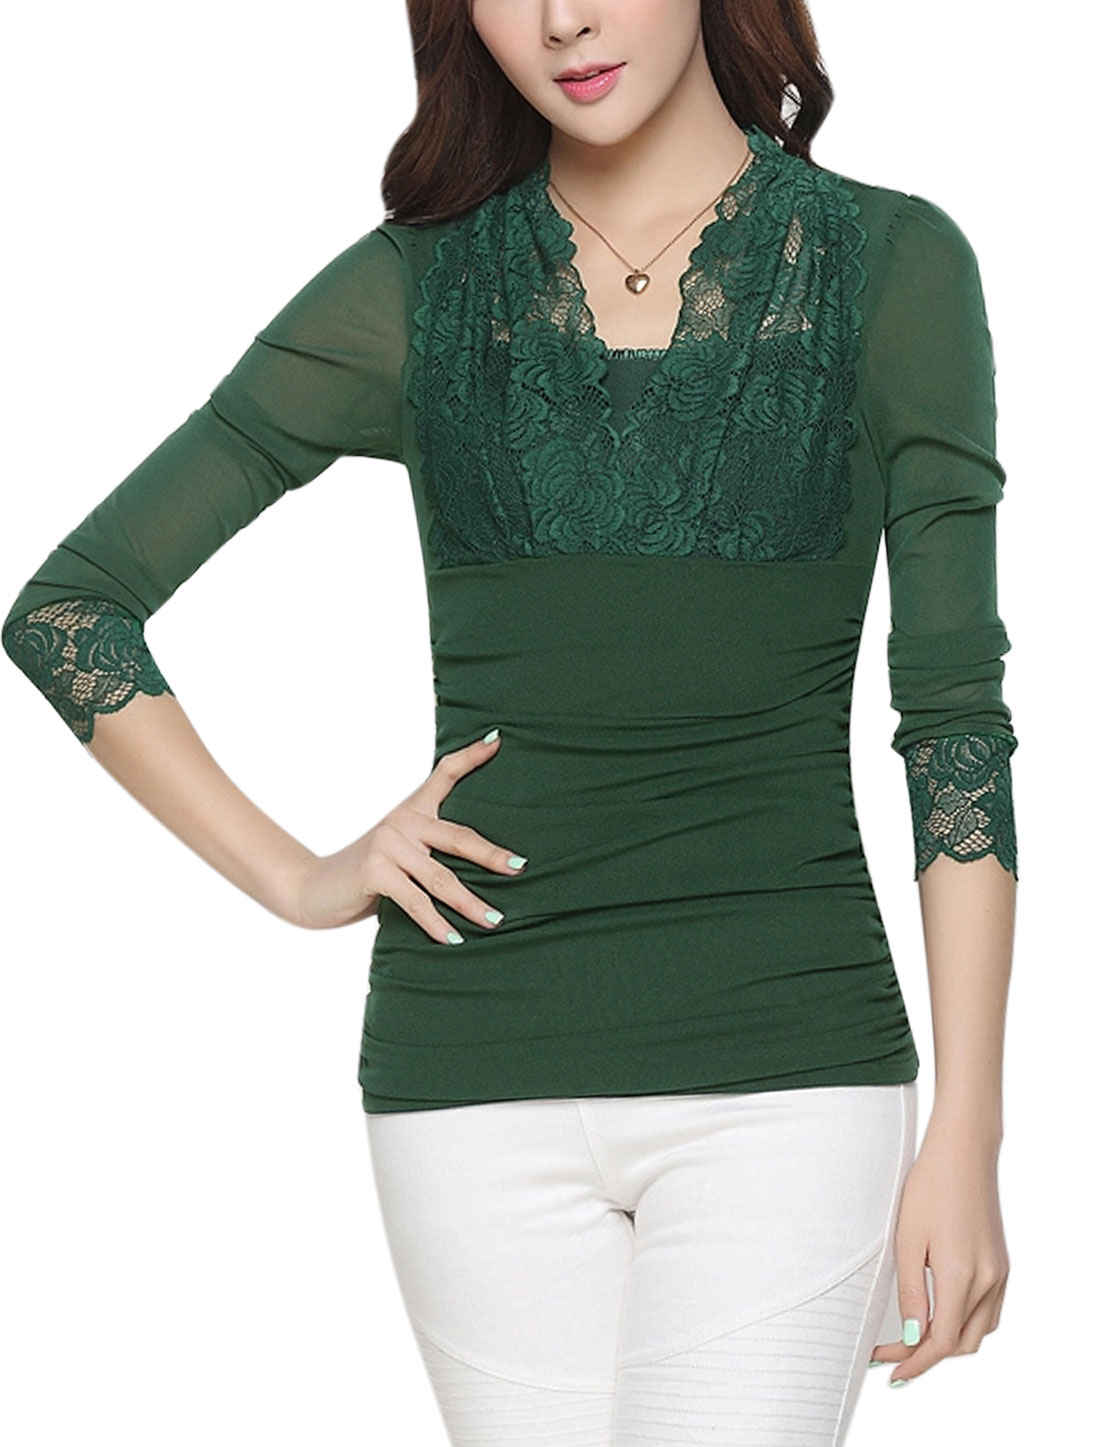 Women Scalloped Neck Lace Panel Ruched Sides Mesh Top Green L